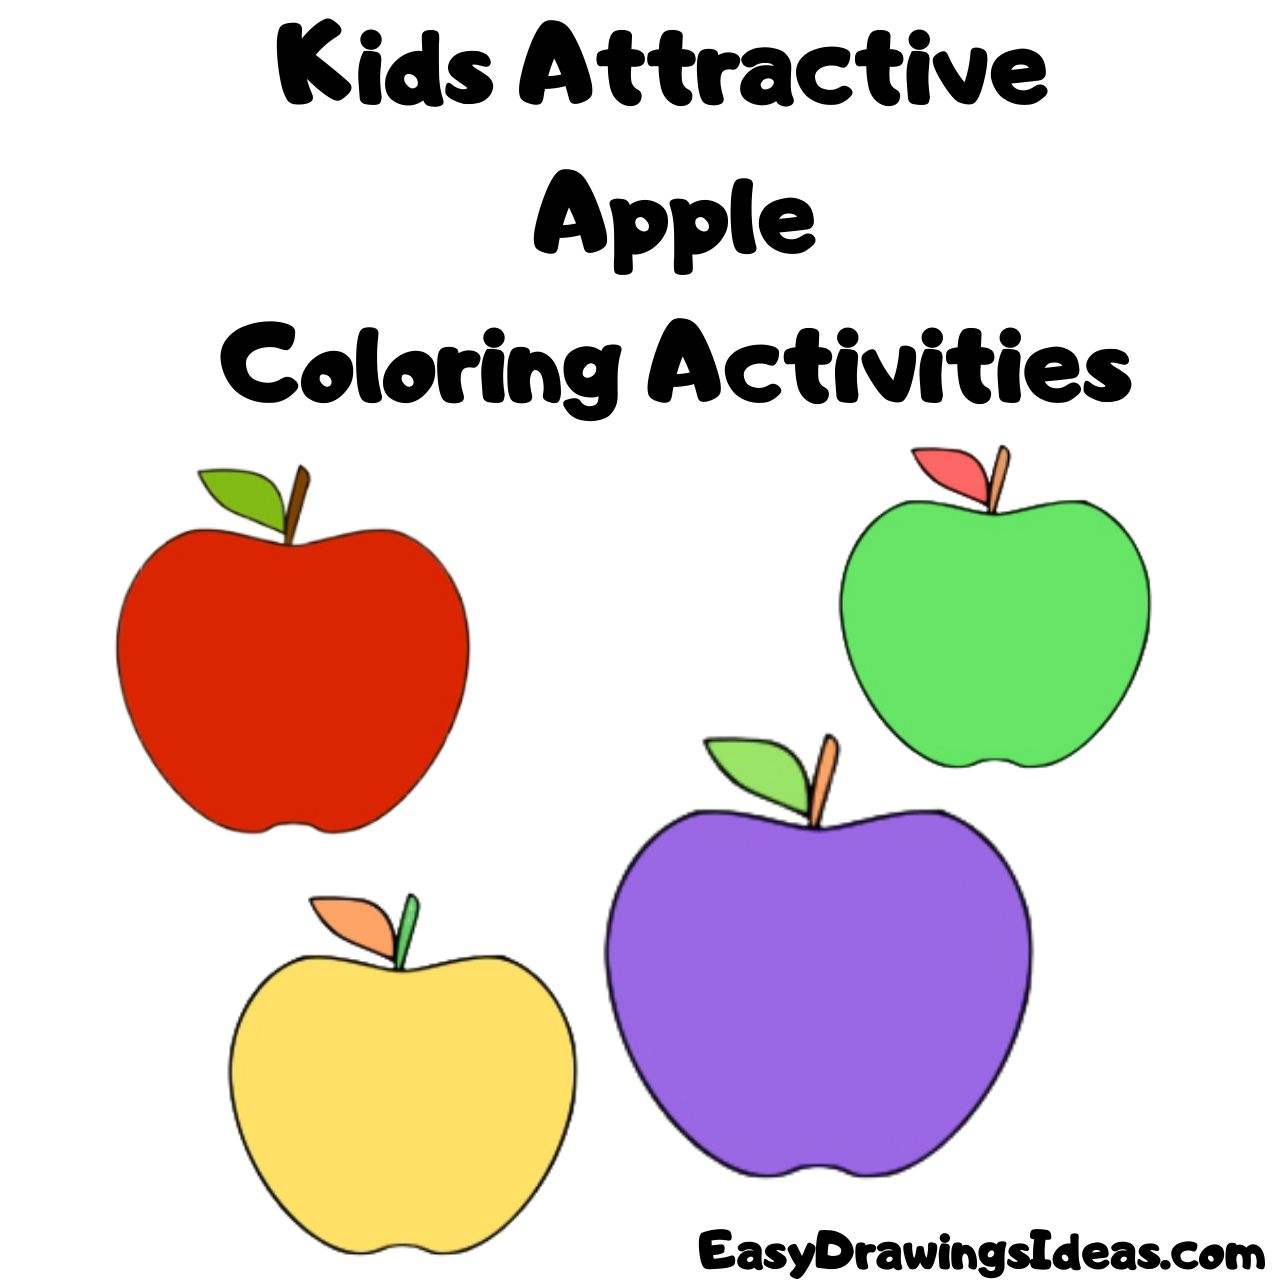 Kids Attractive Apple Coloring Activities FOR KIDS STEP BY STEP